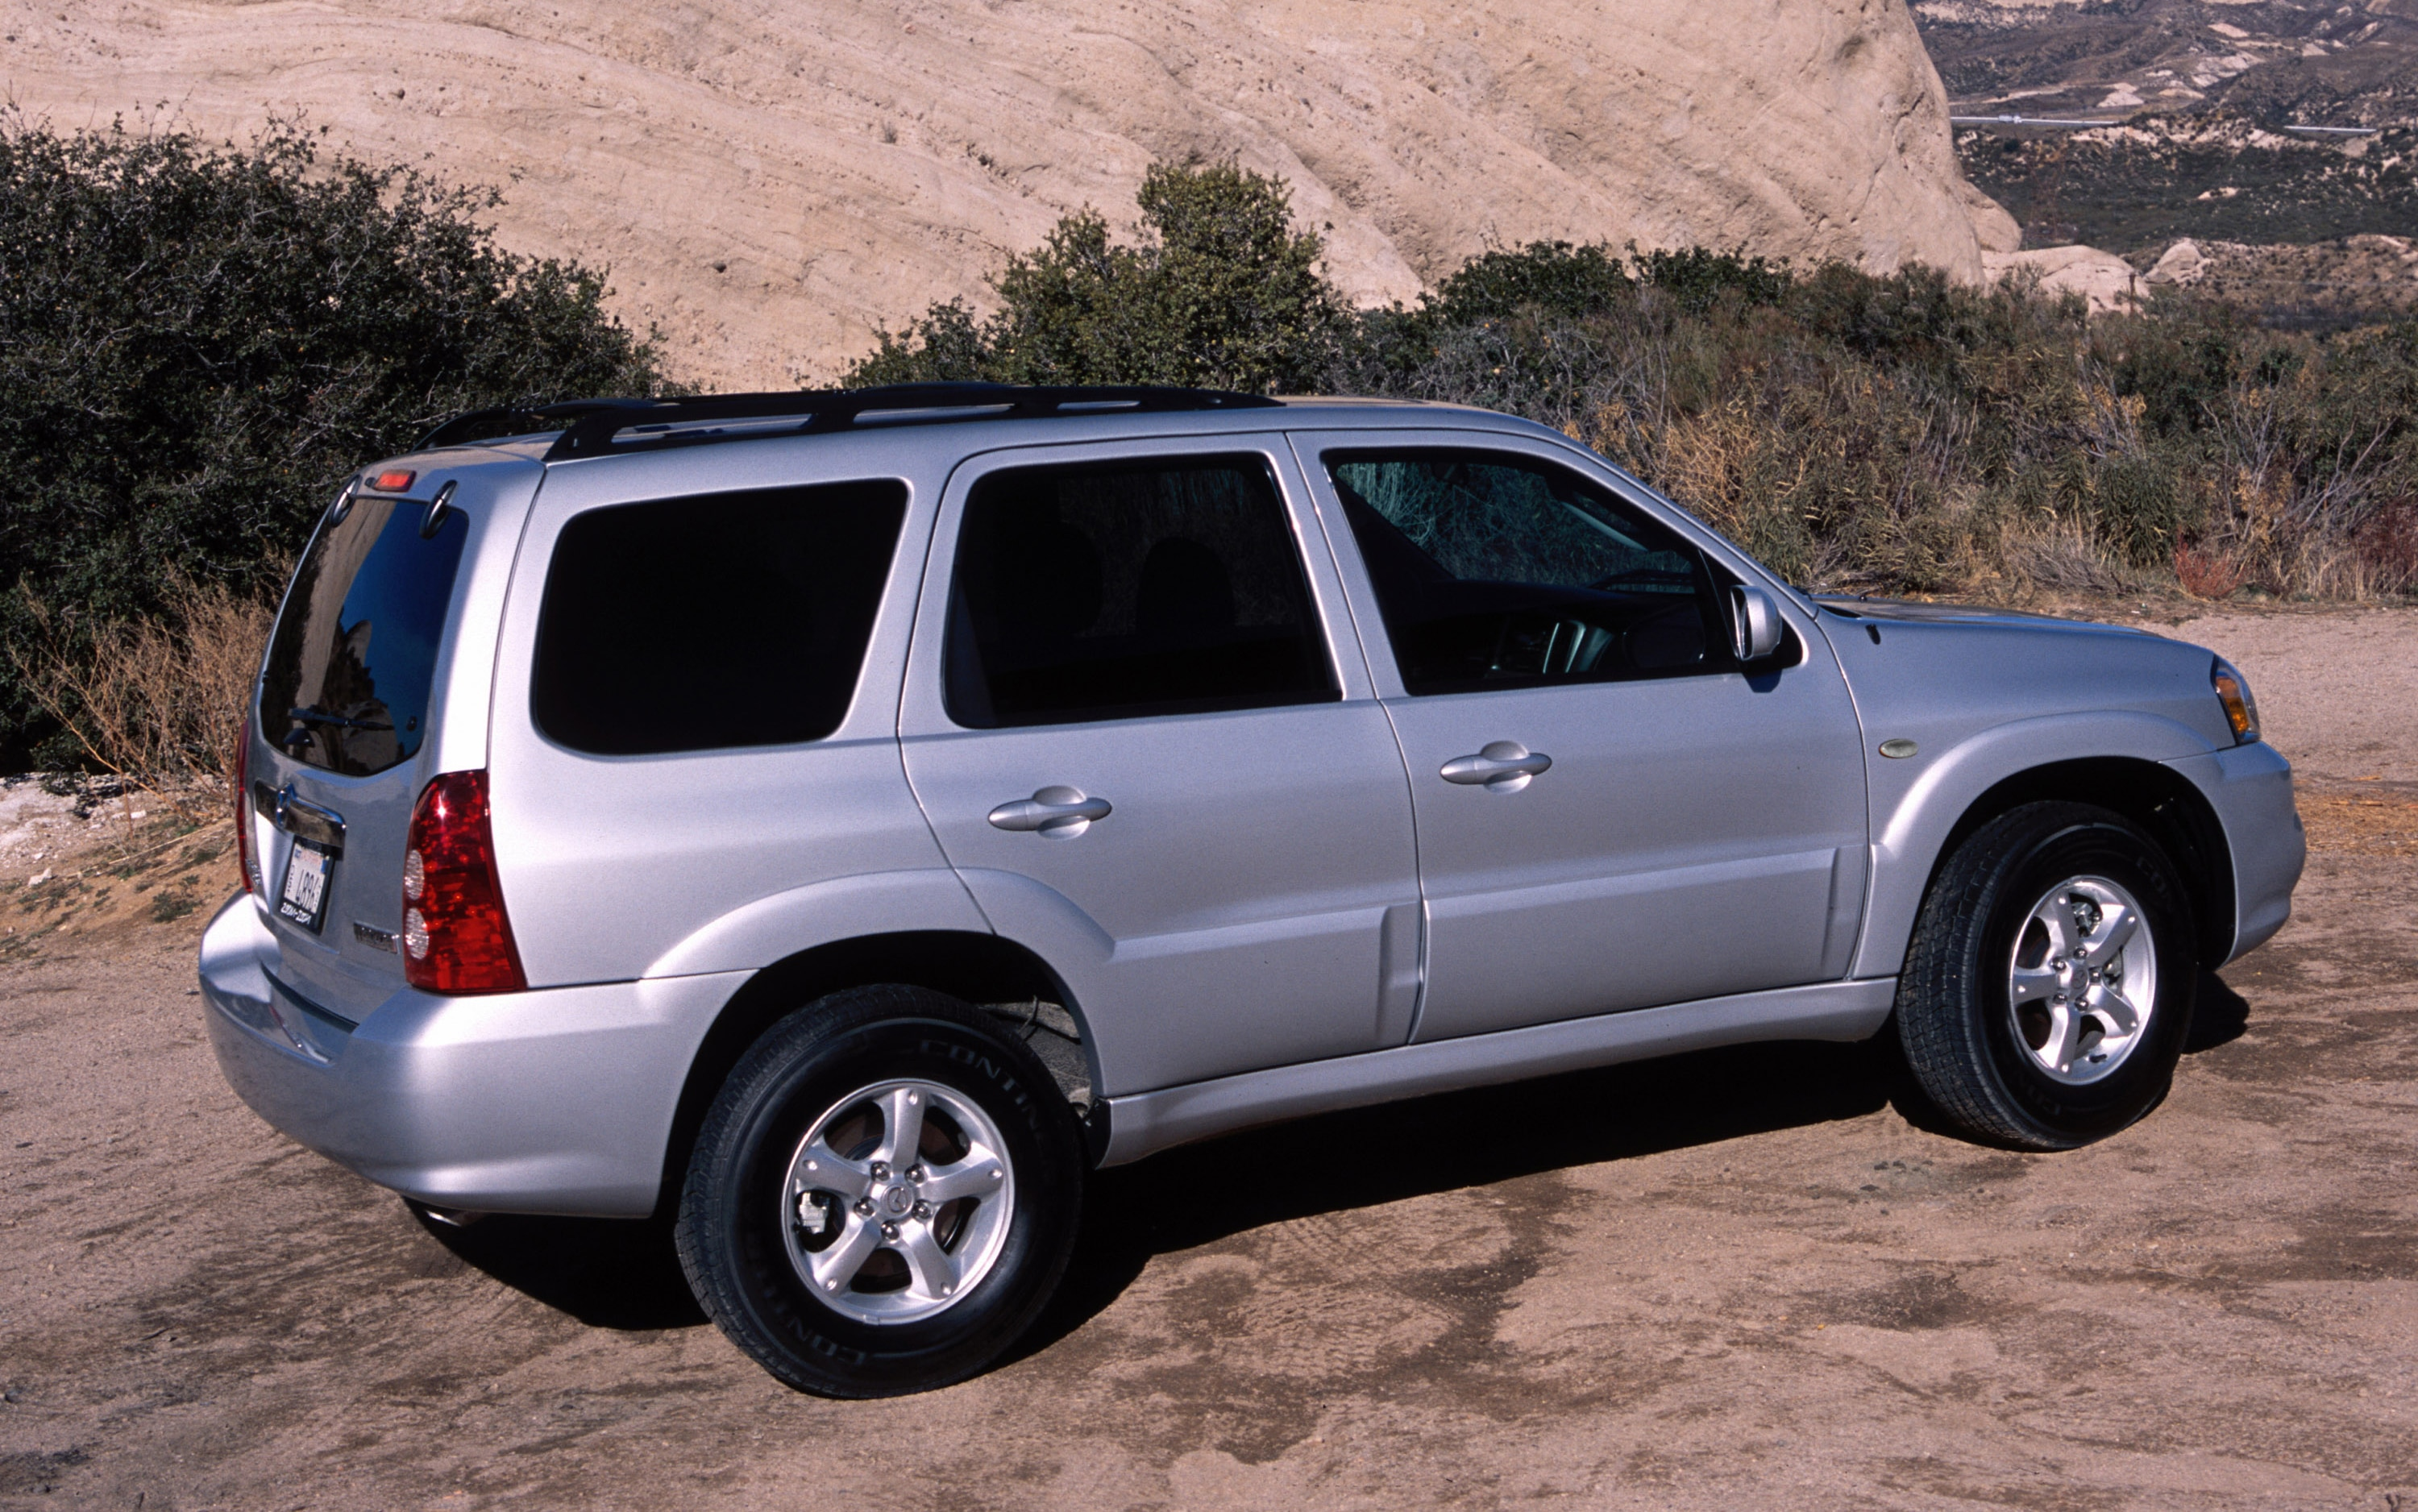 Recall Central: 2001-2002 Mazda Tribute Master Cylinder Leaks Could Cause Fire